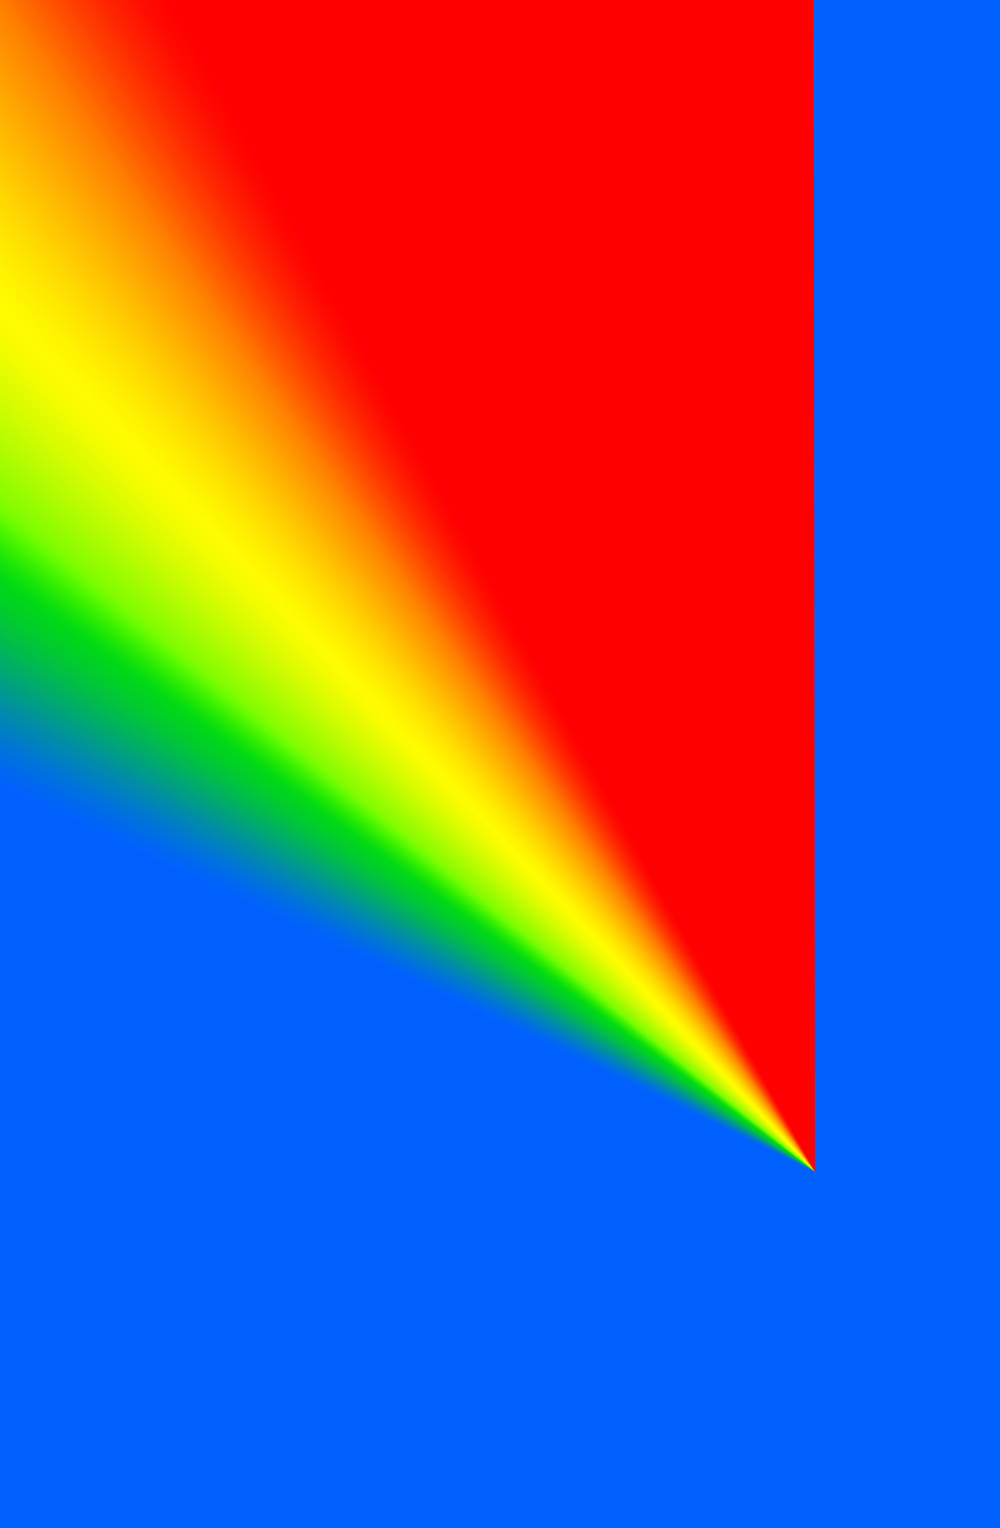 Cory arcangel   photoshop cs  110 by 72 inches  300 dpi  rgb  square pixels  default gradient    russell   s rainbow     tur